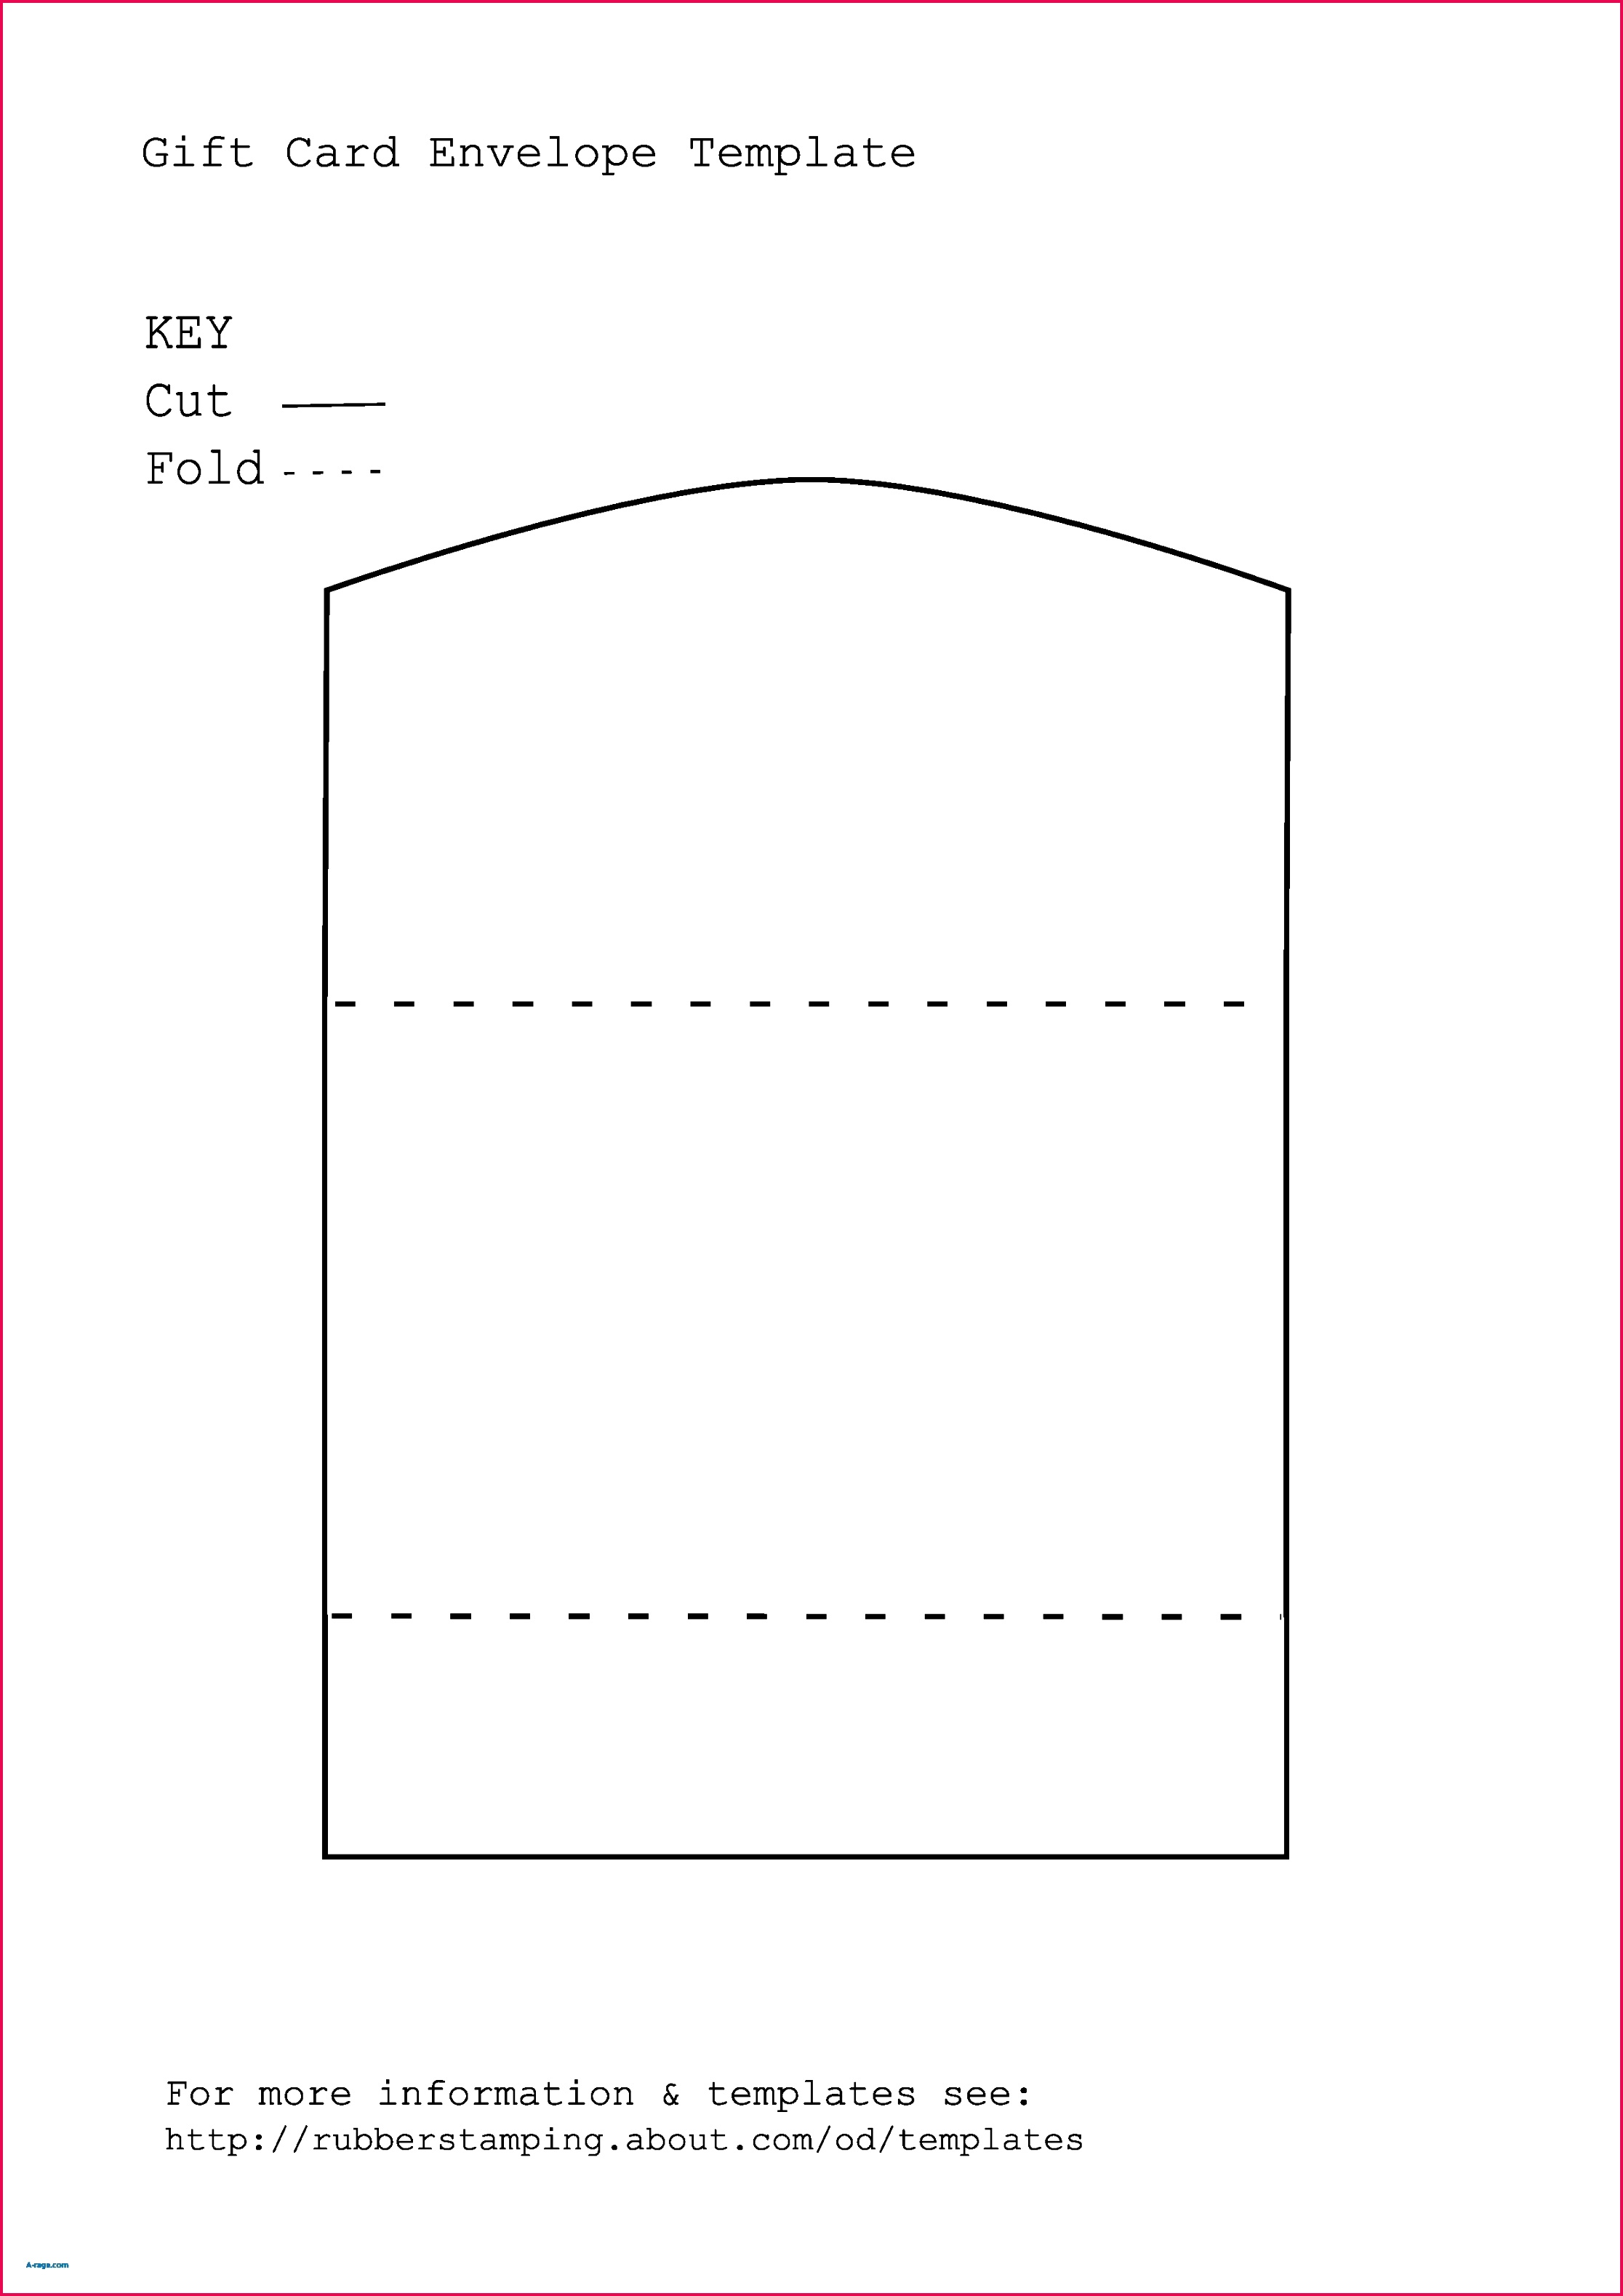 006 Business Card Envelope Template New Reference Fresh Gift Envelopes Templates